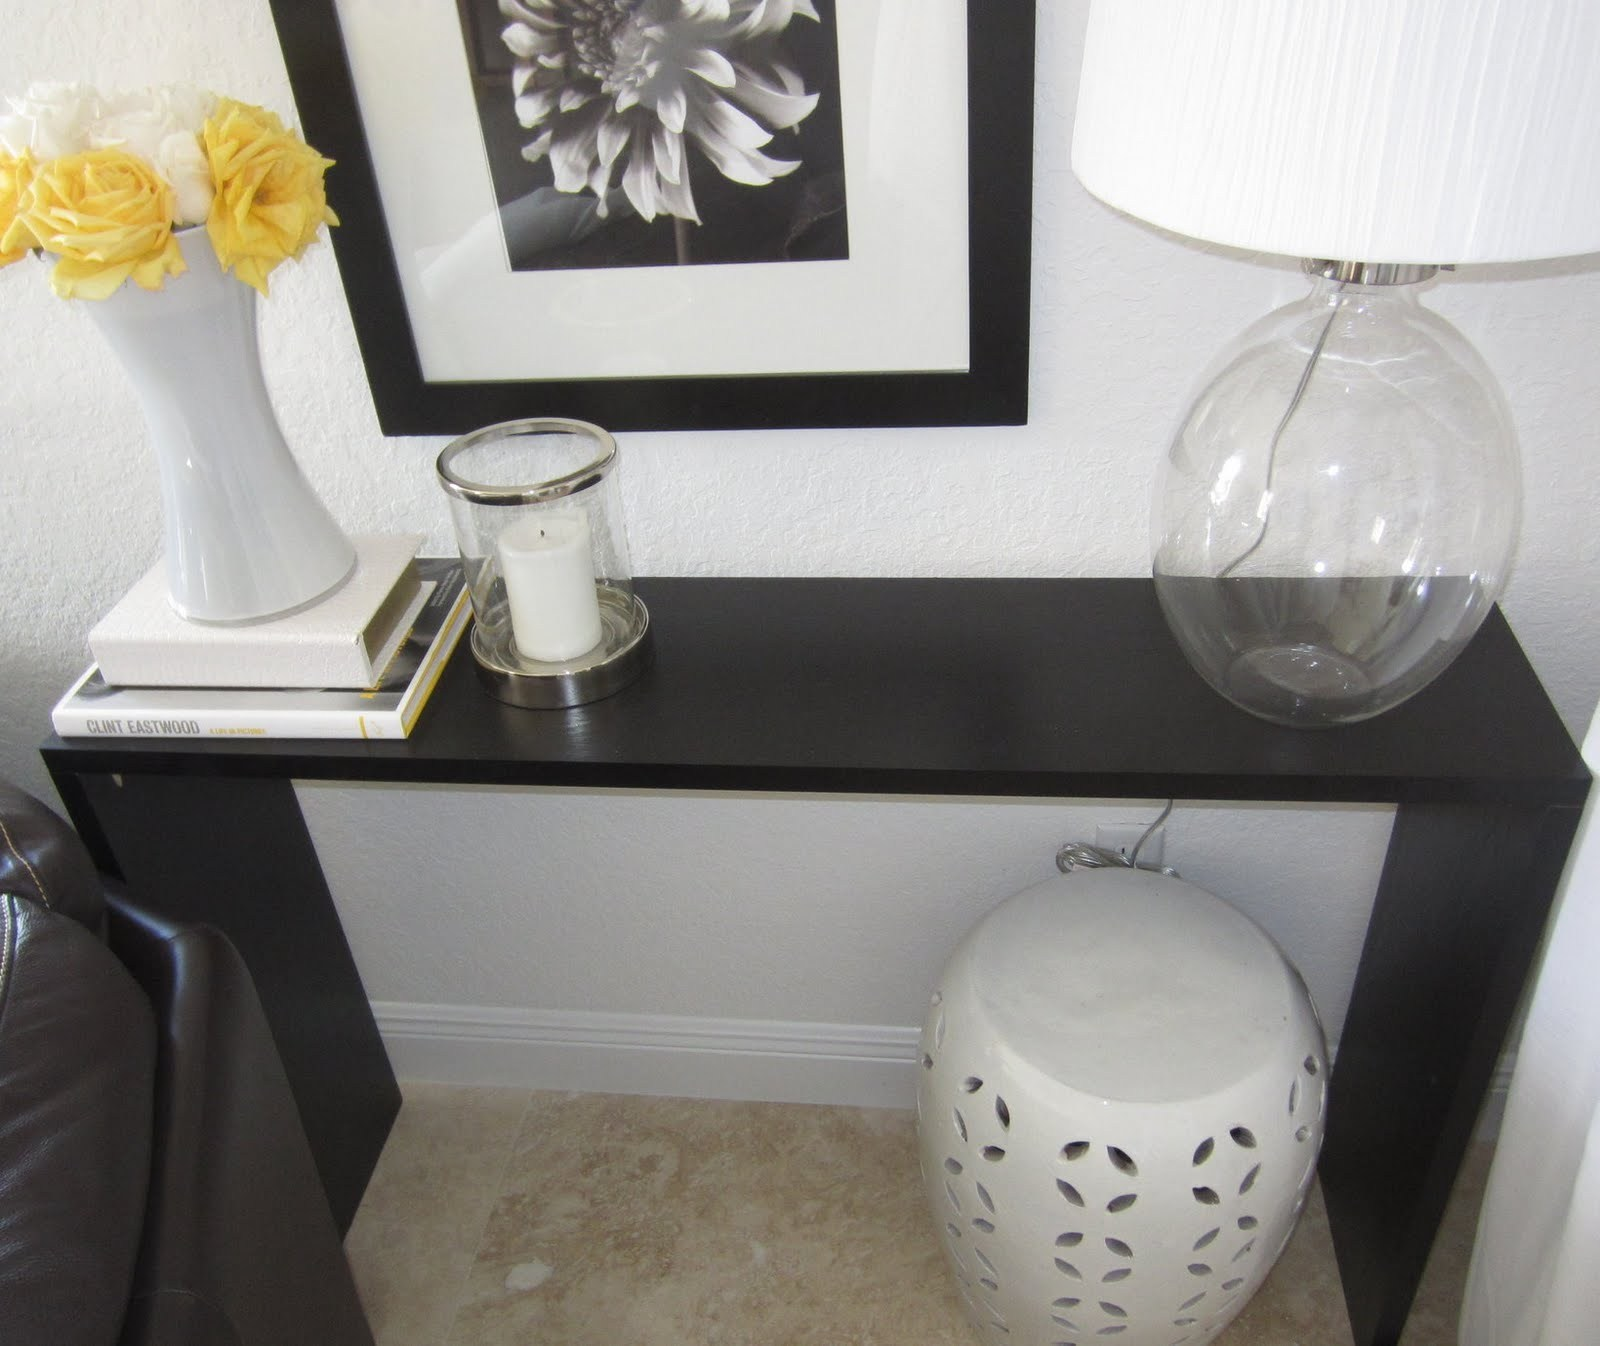 lamps plus accent tables fascinating console ikea dark brown finish decorated against the wall elegant table lamp and ceramic vase white round ott workbench legs pier one